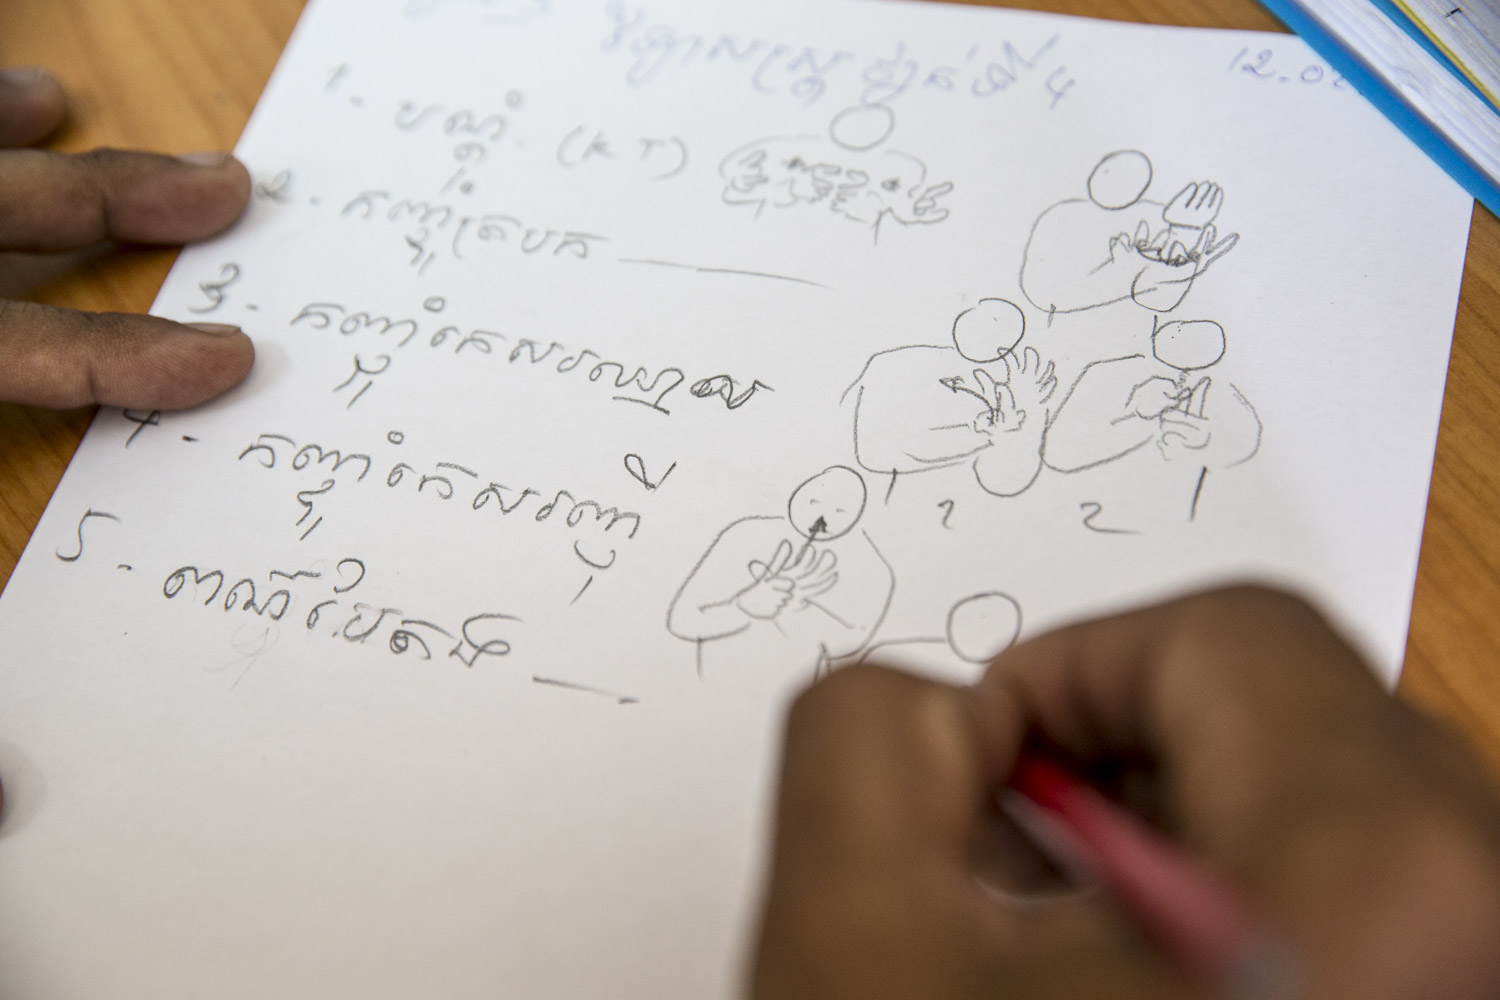 Sam Ath Heang's hands at a language creation session where Cambodian Sign Langauge is being created on a daily basis. Once there is agreement between the participants ,Sam Ath draws the gestures on paper. Later the drawing will be converted to a digital illustration.